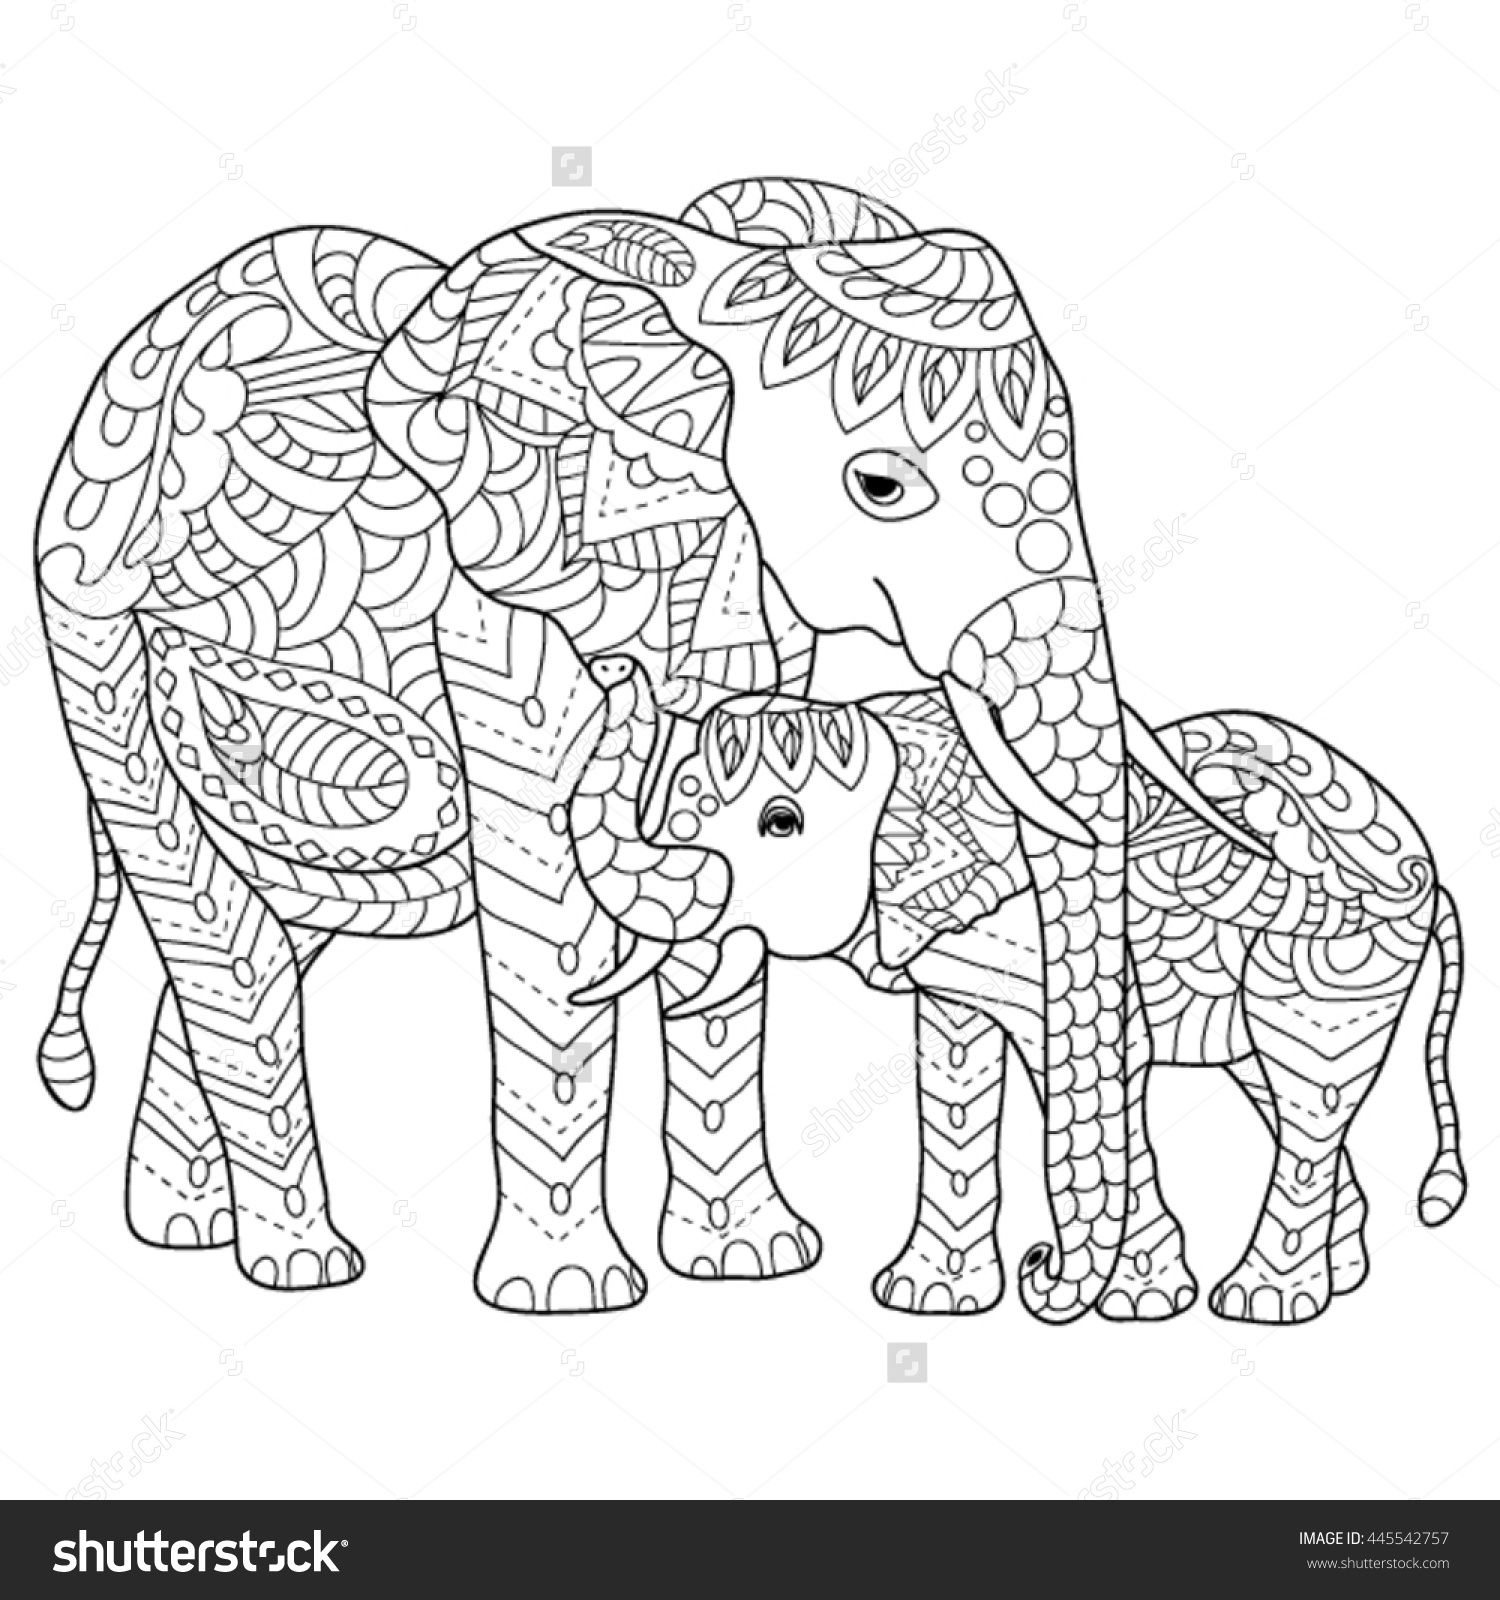 Hand Drawn Elephants Coloring Page Elephant Coloring Page